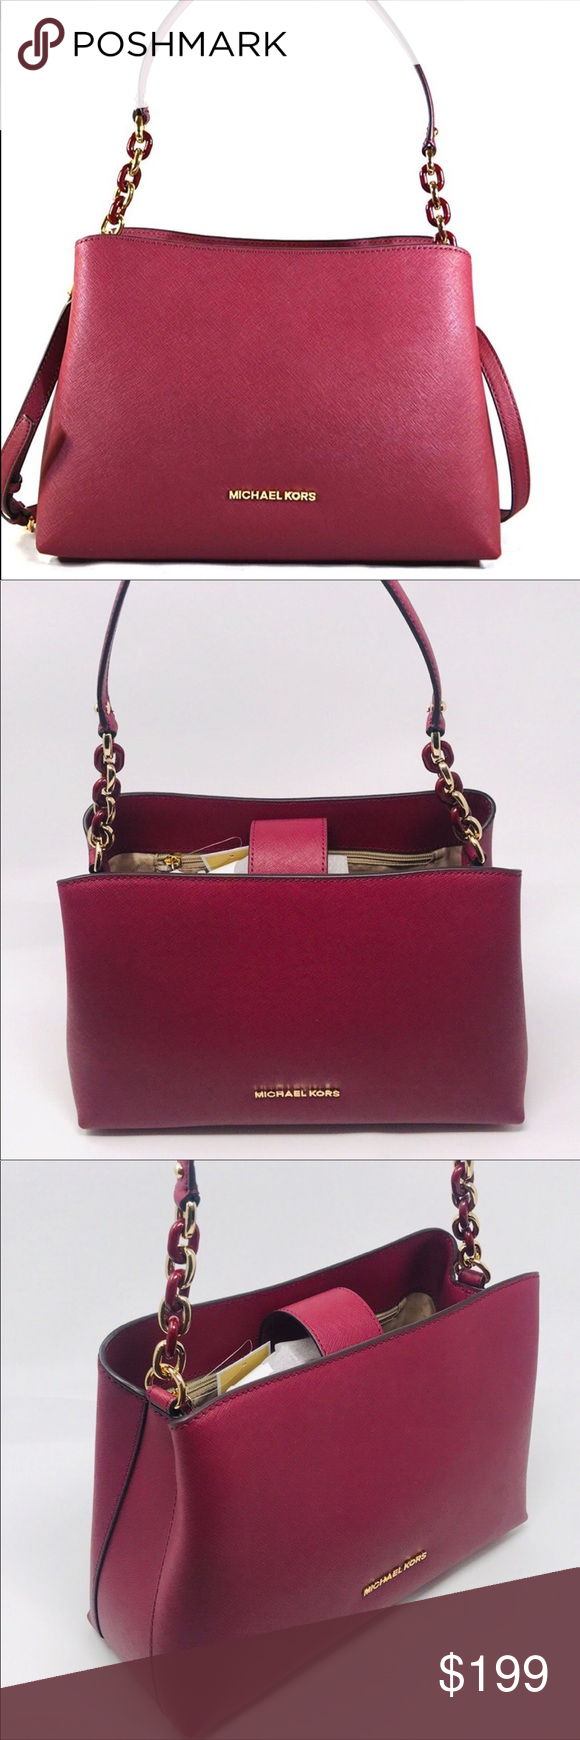 Michael Kors Mulberry Bag New with tags; 13 by 9 by 5 inches Michael Kors Bags #mulberrybag Michael Kors Mulberry Bag New with tags; 13 by 9 by 5 inches Michael Kors Bags #mulberrybag Michael Kors Mulberry Bag New with tags; 13 by 9 by 5 inches Michael Kors Bags #mulberrybag Michael Kors Mulberry Bag New with tags; 13 by 9 by 5 inches Michael Kors Bags #mulberrybag